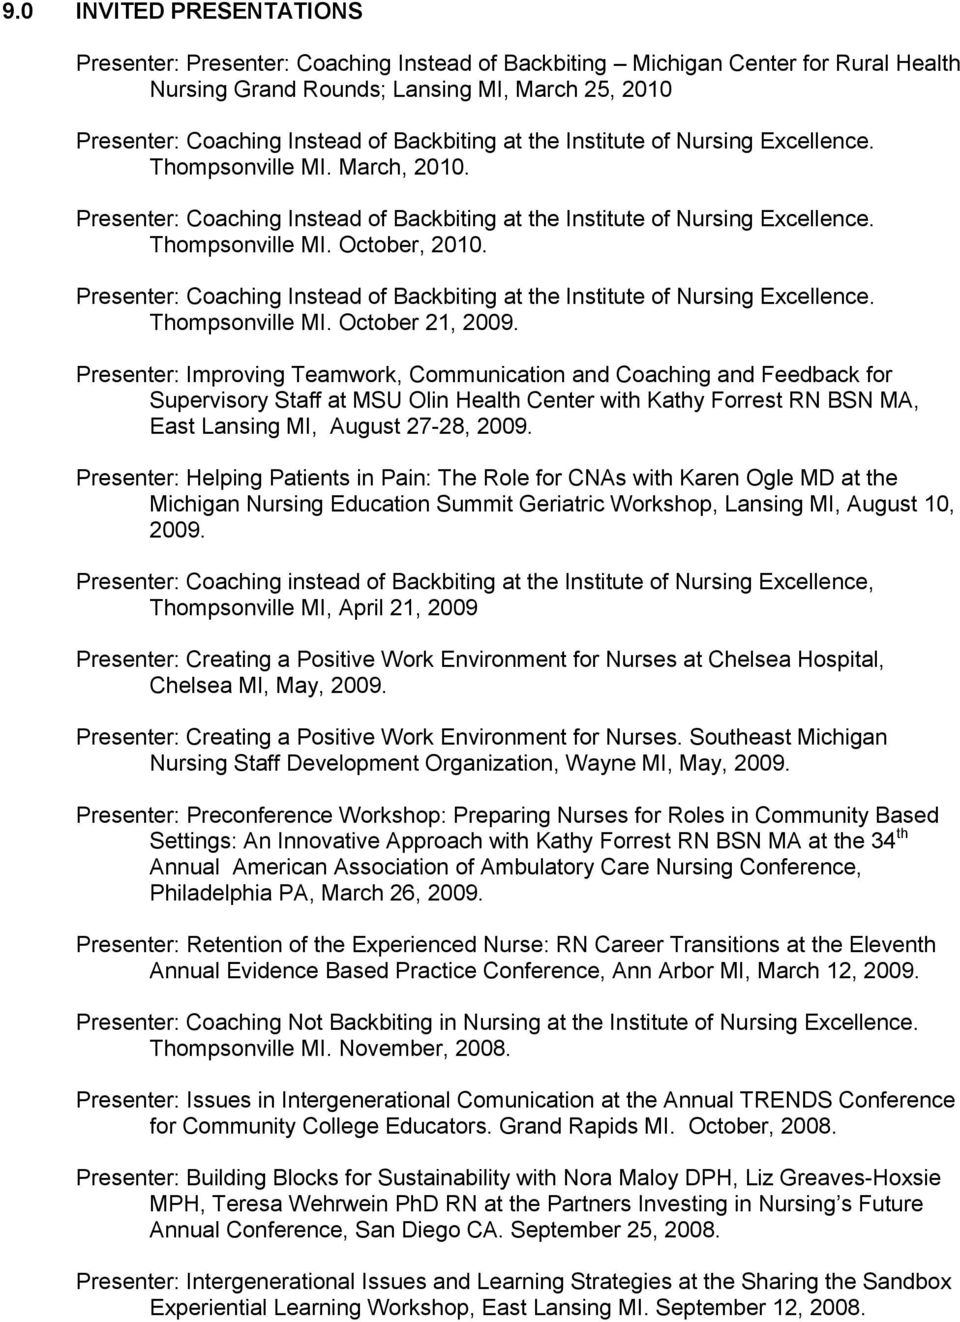 Presenter: Coaching Instead of Backbiting at the Institute of Nursing Excellence. Thompsonville MI. October 21, 2009.